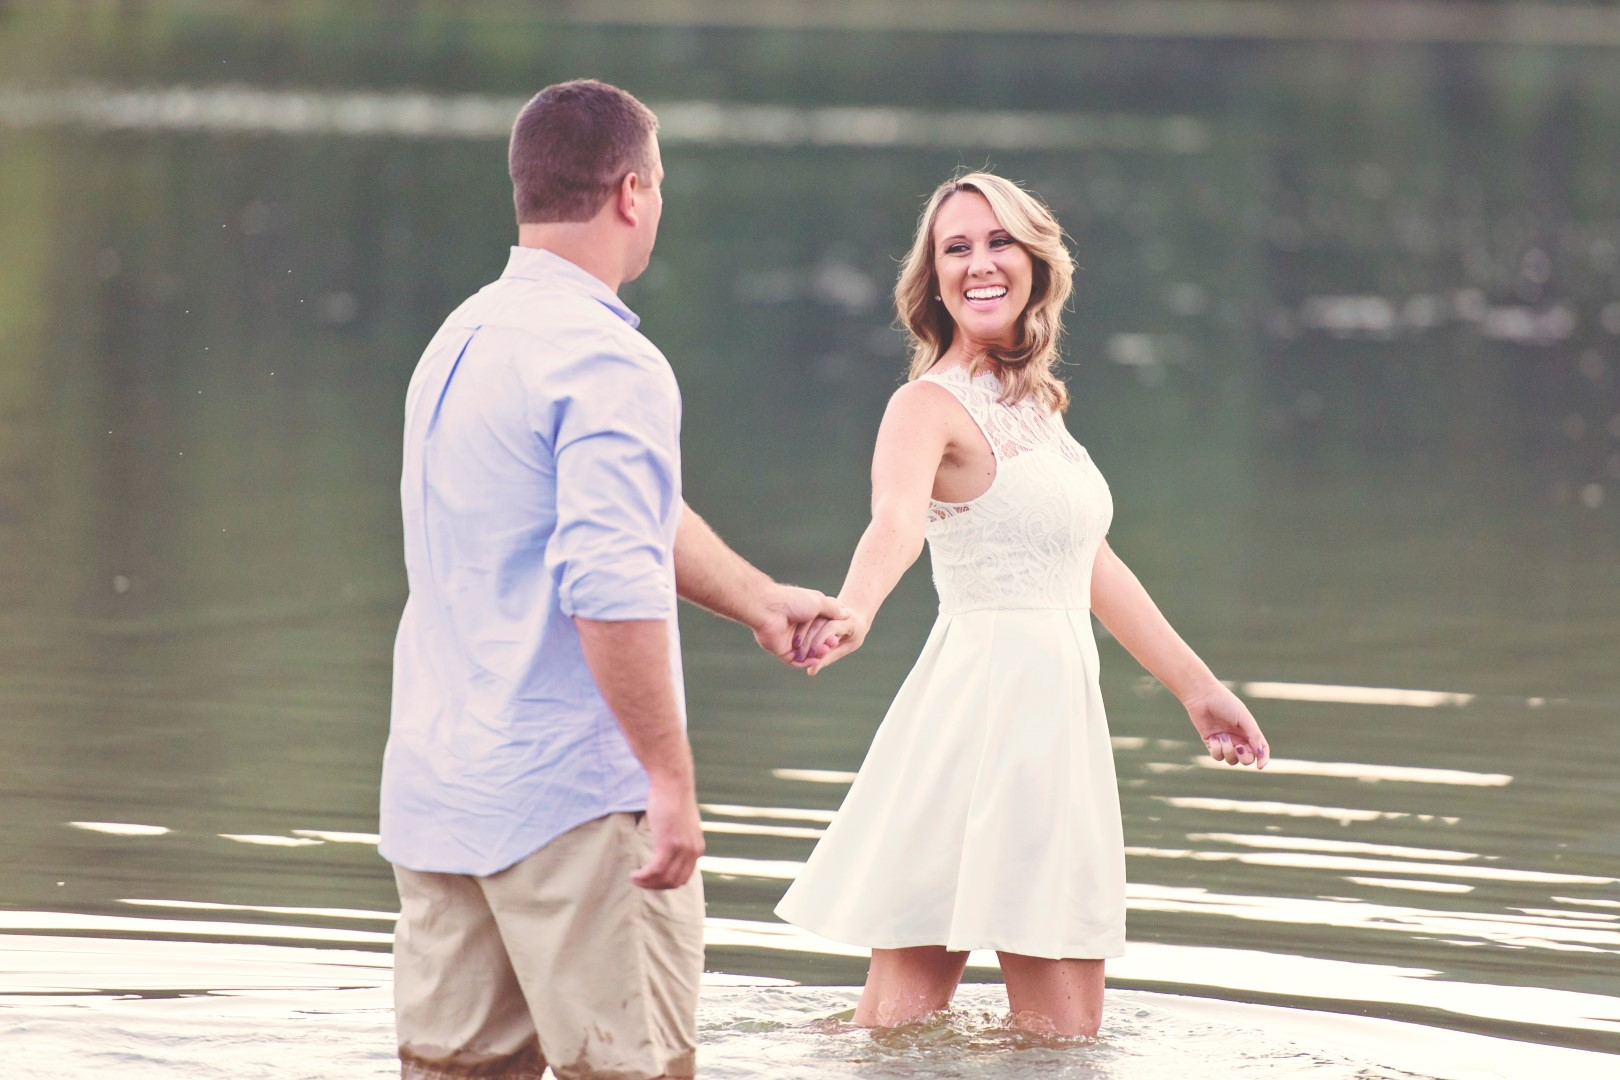 LeighAnn_Beau_Engagement_Collection_19 (Large).jpg